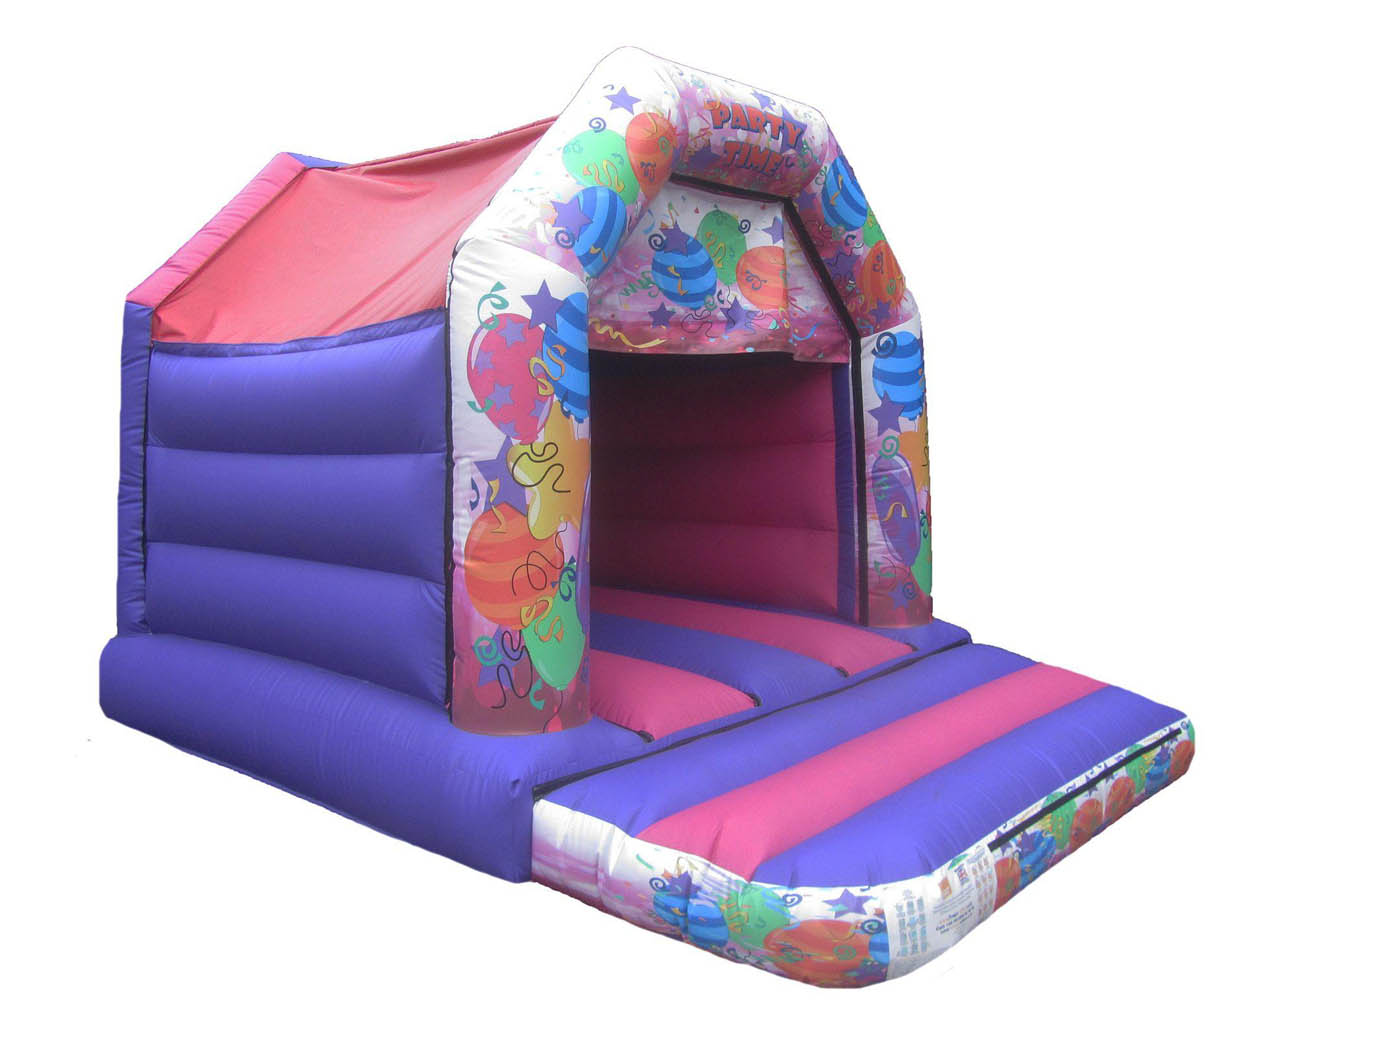 Pink Party Velcro Bouncy Castle for Sale